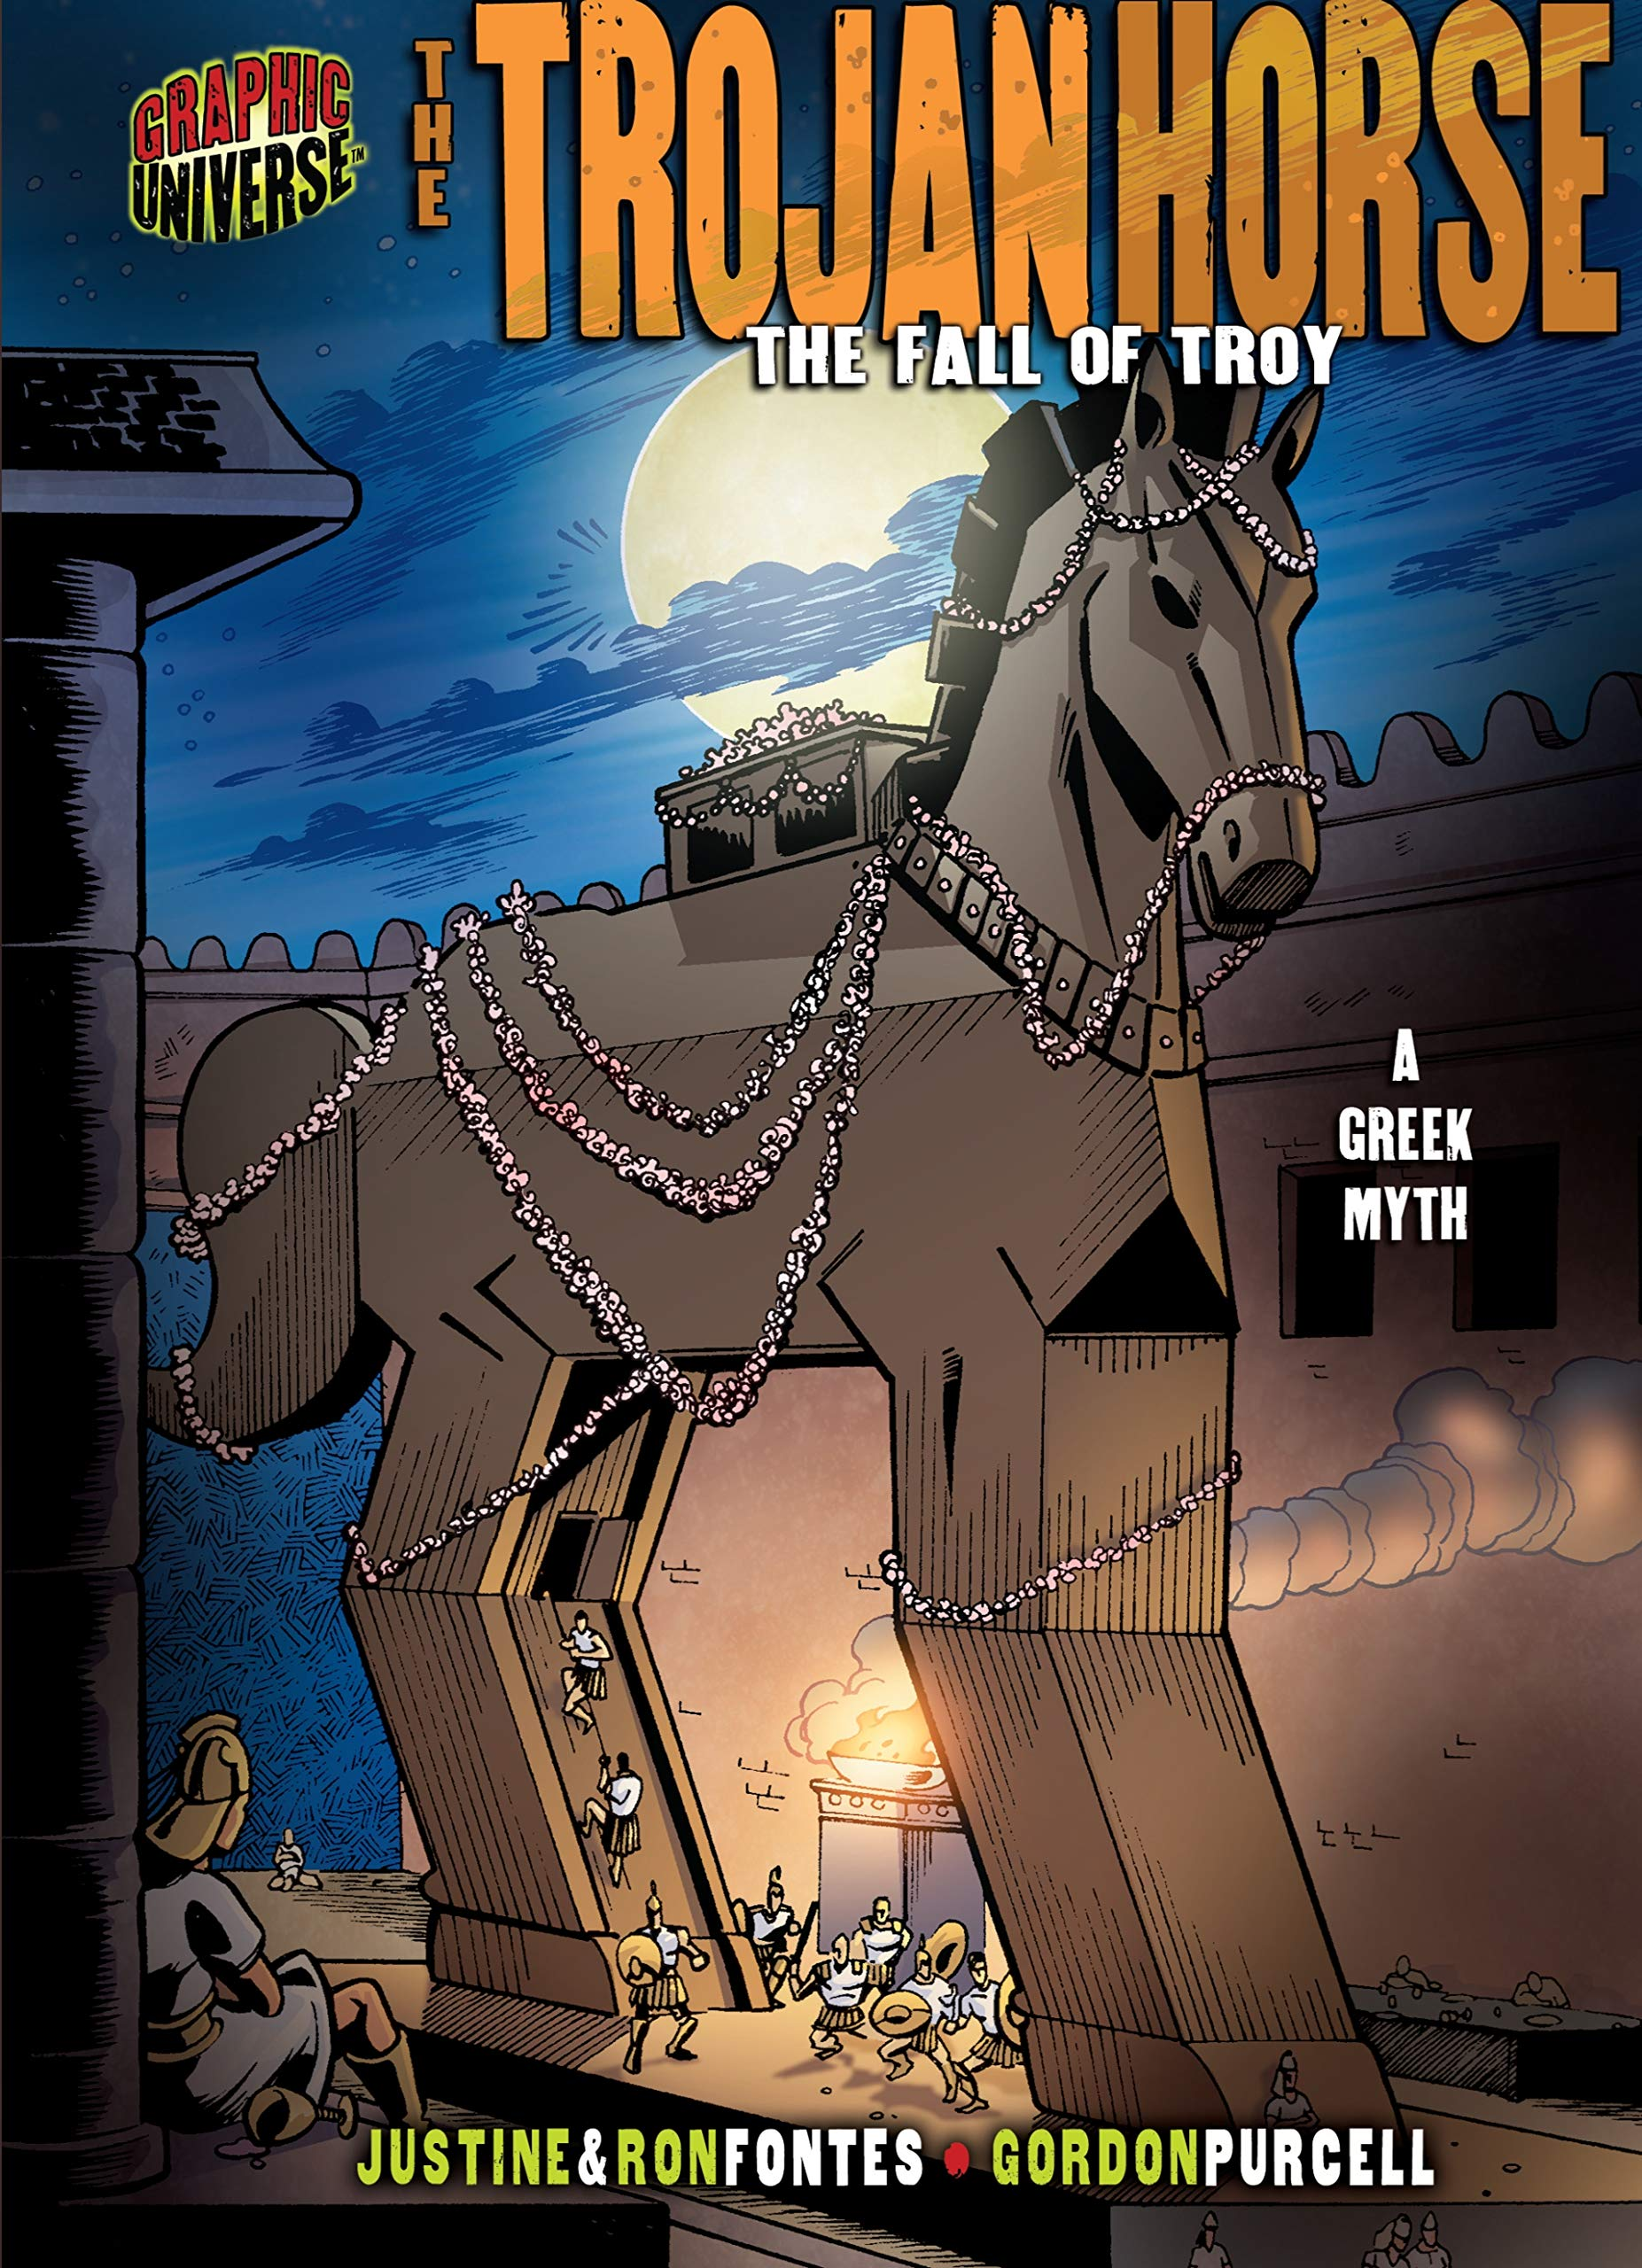 Read Online The Trojan Horse: The Fall of Troy [a Greek Myth] (Graphic Myths and Legends) ebook